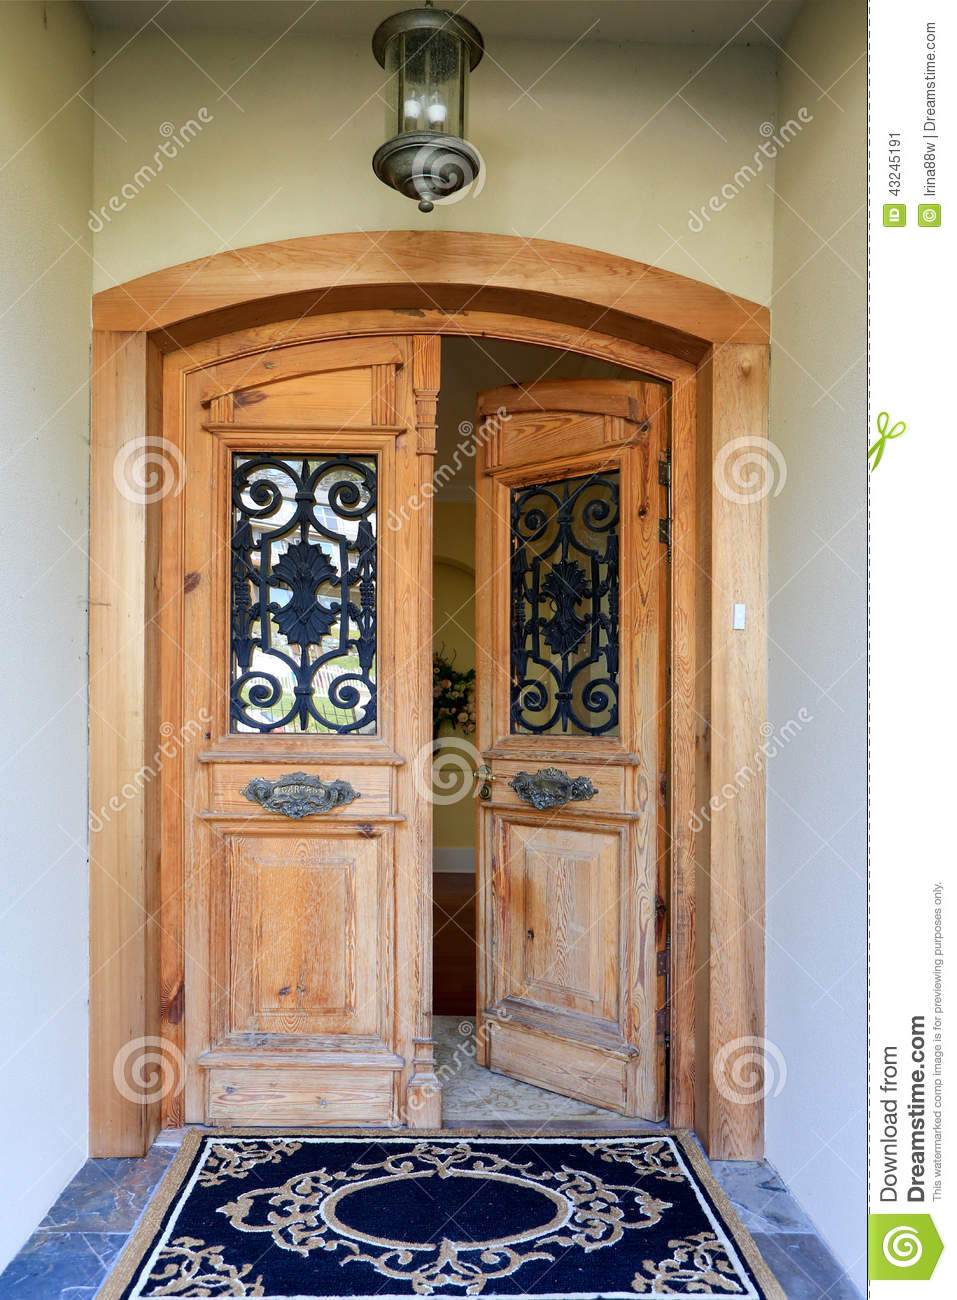 Luxury house entrance porch with open door stock photo for House door pic